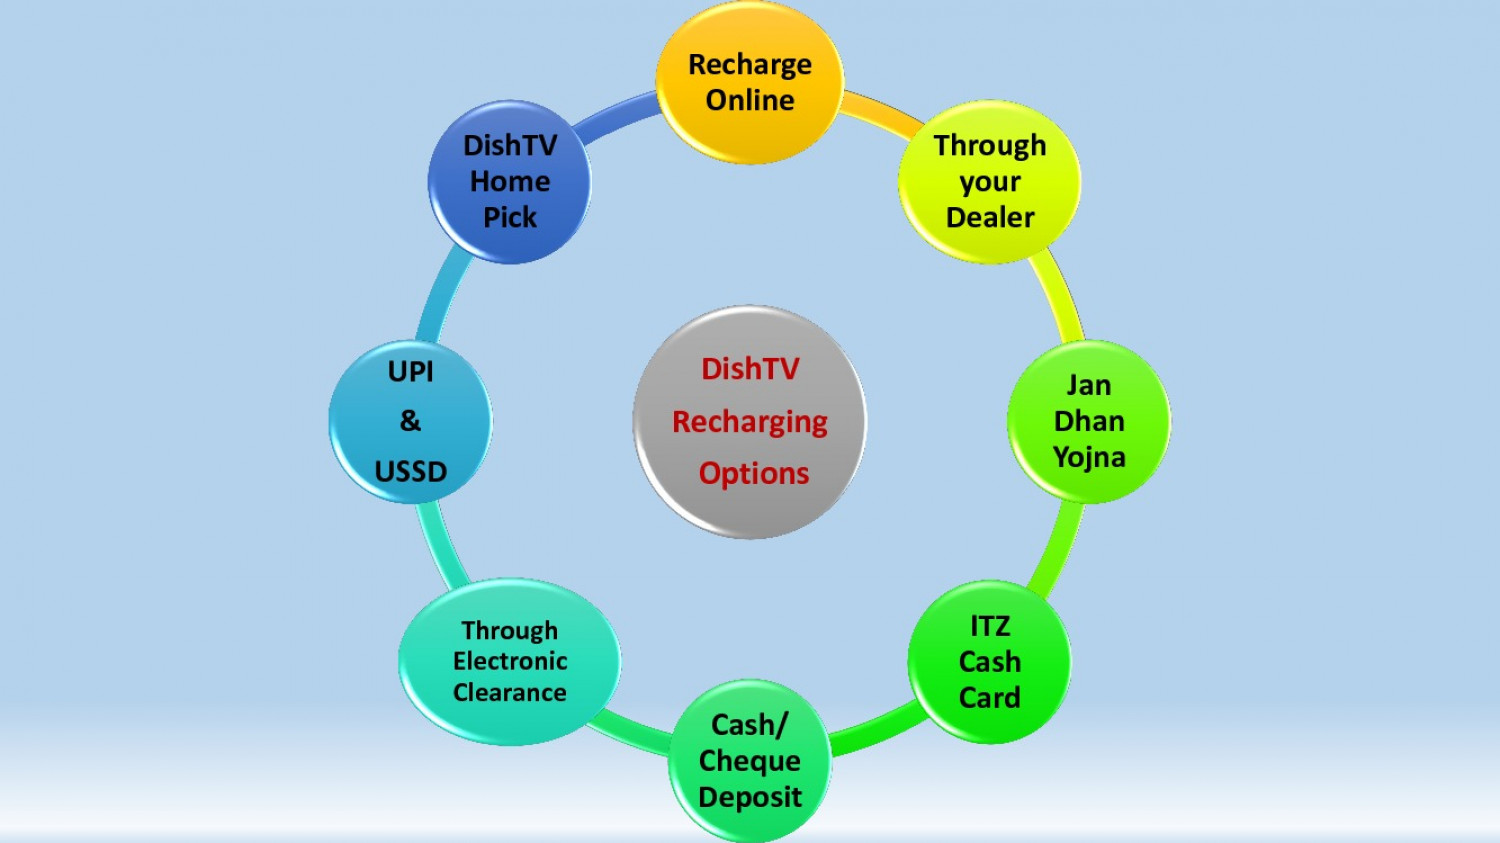 Various Recharge Options of DishTV Infographic